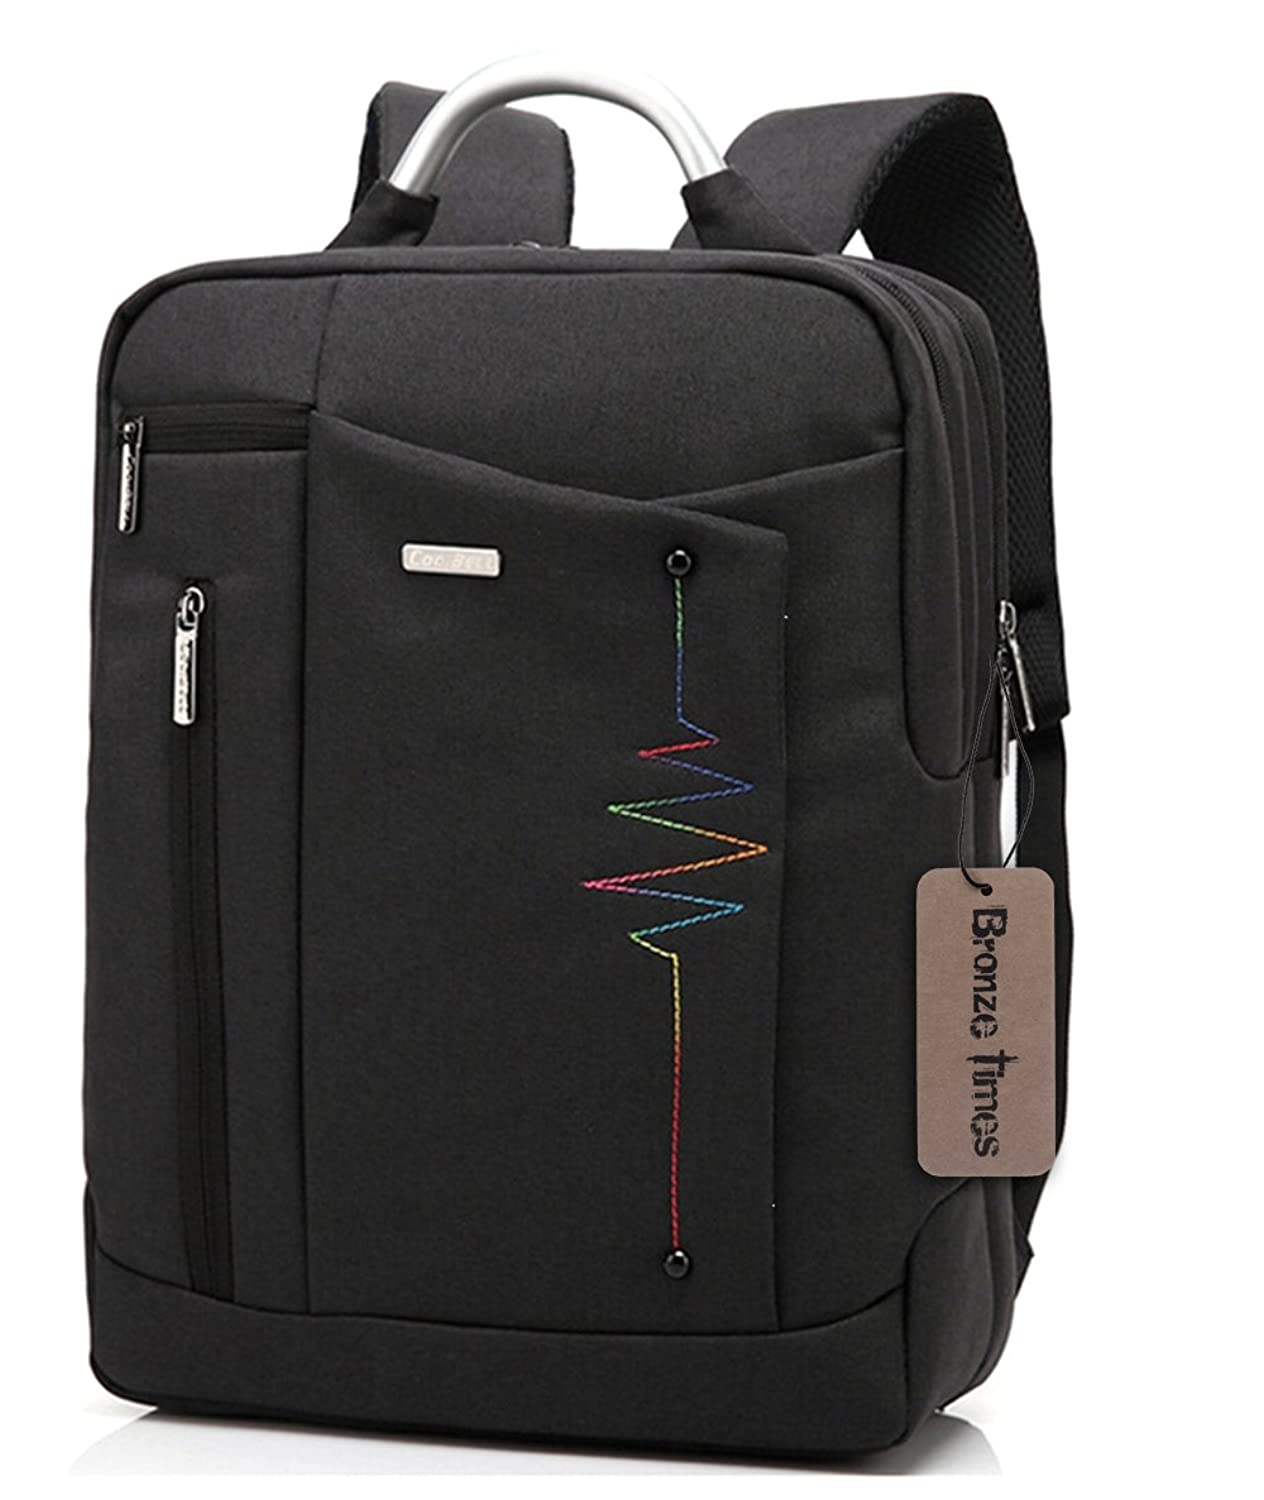 Bronze Times (TM) Premium Shockproof Canvas Laptop Backpack Travel Bag